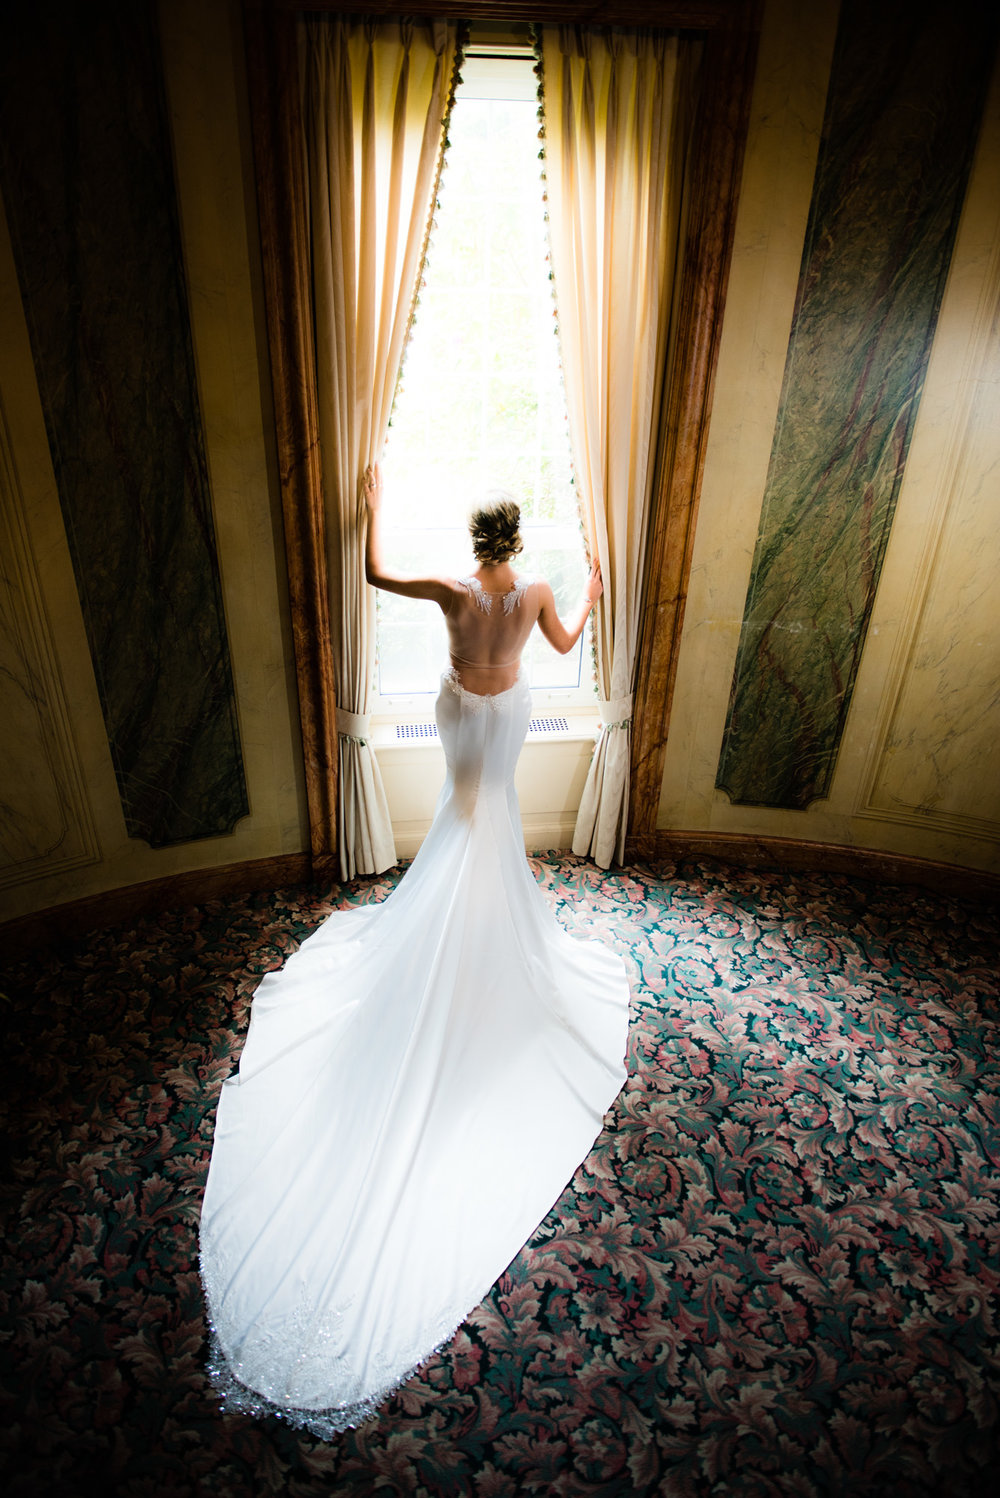 Bridal portrait from celebrity wedding photographer Brian Friedman of B Freed.